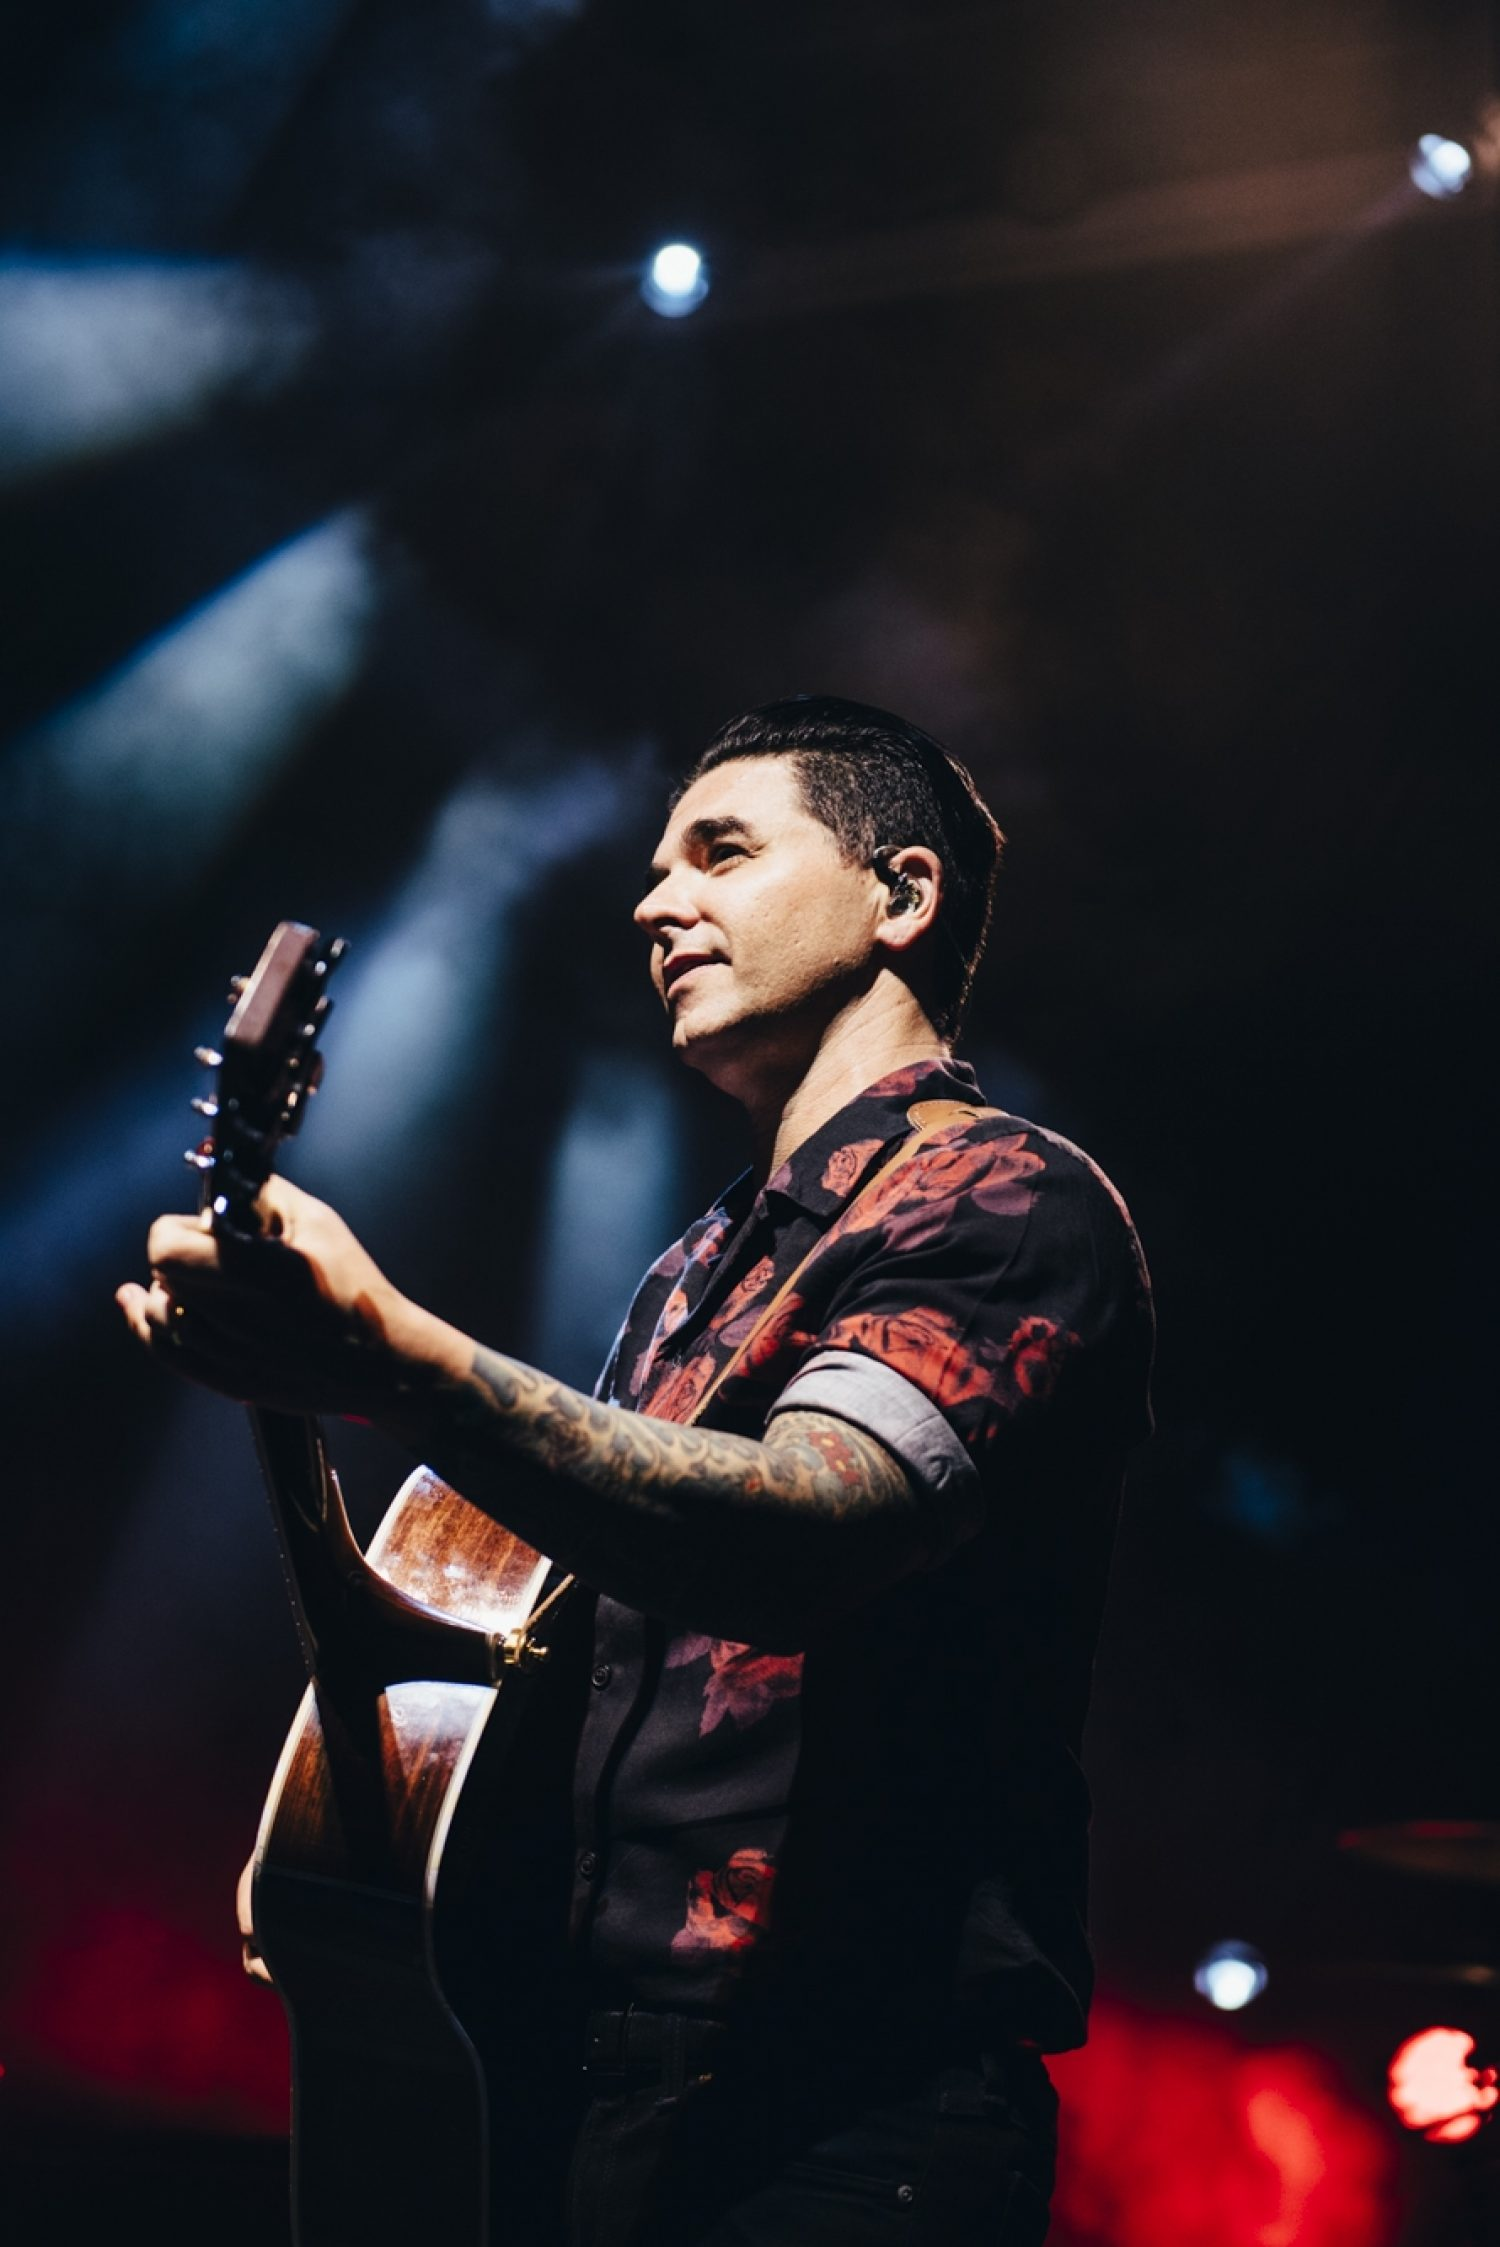 Here's Dashboard Confessional and Black Foxxes smashing London's KOKO